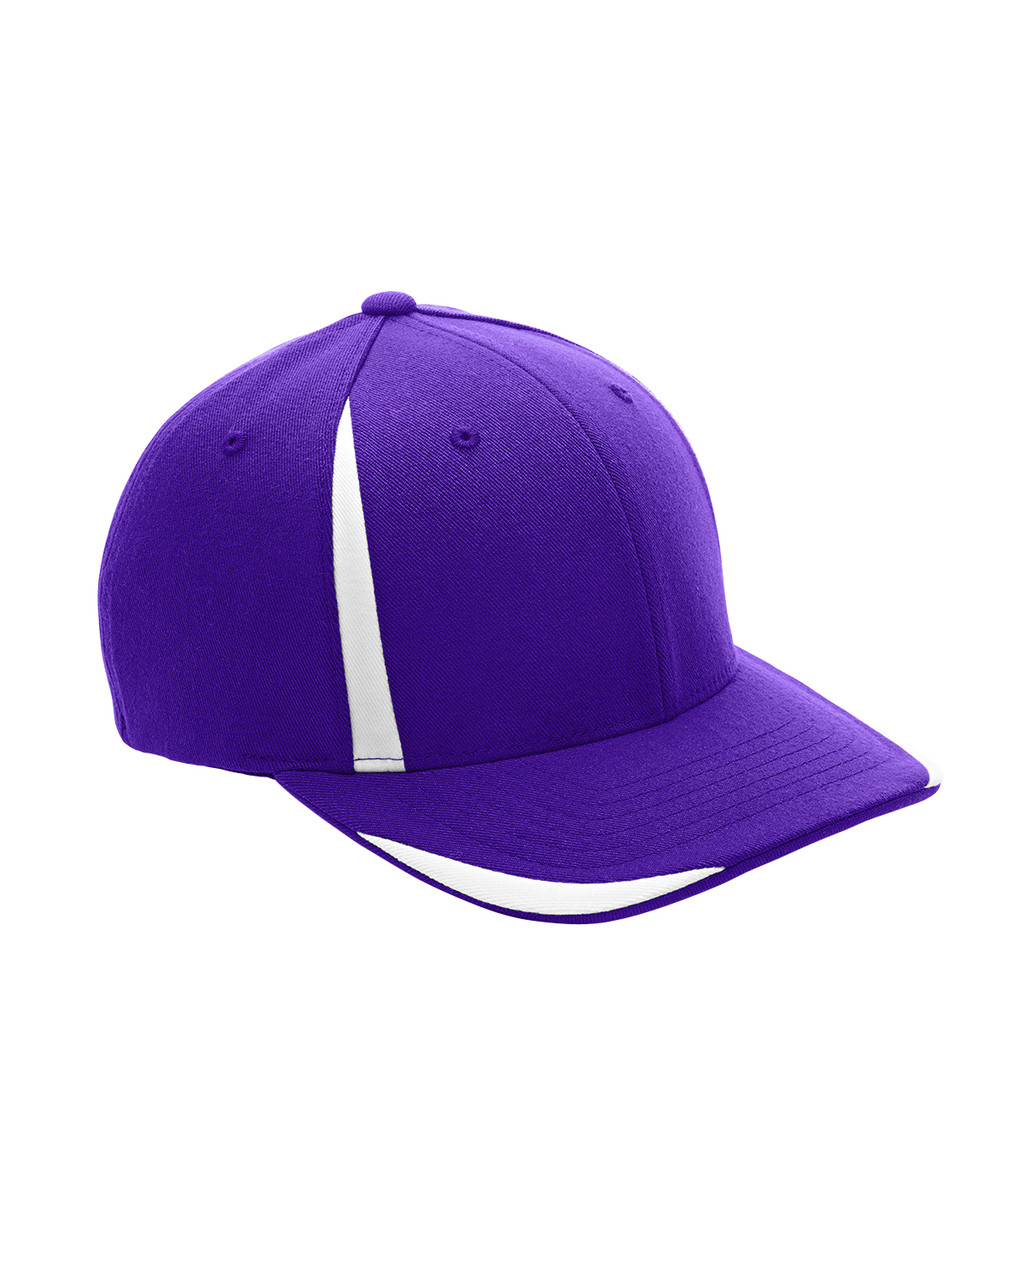 Purple/White - ATB102 Flexfit for Team 365 Pro-Formance Front Sweep Cap